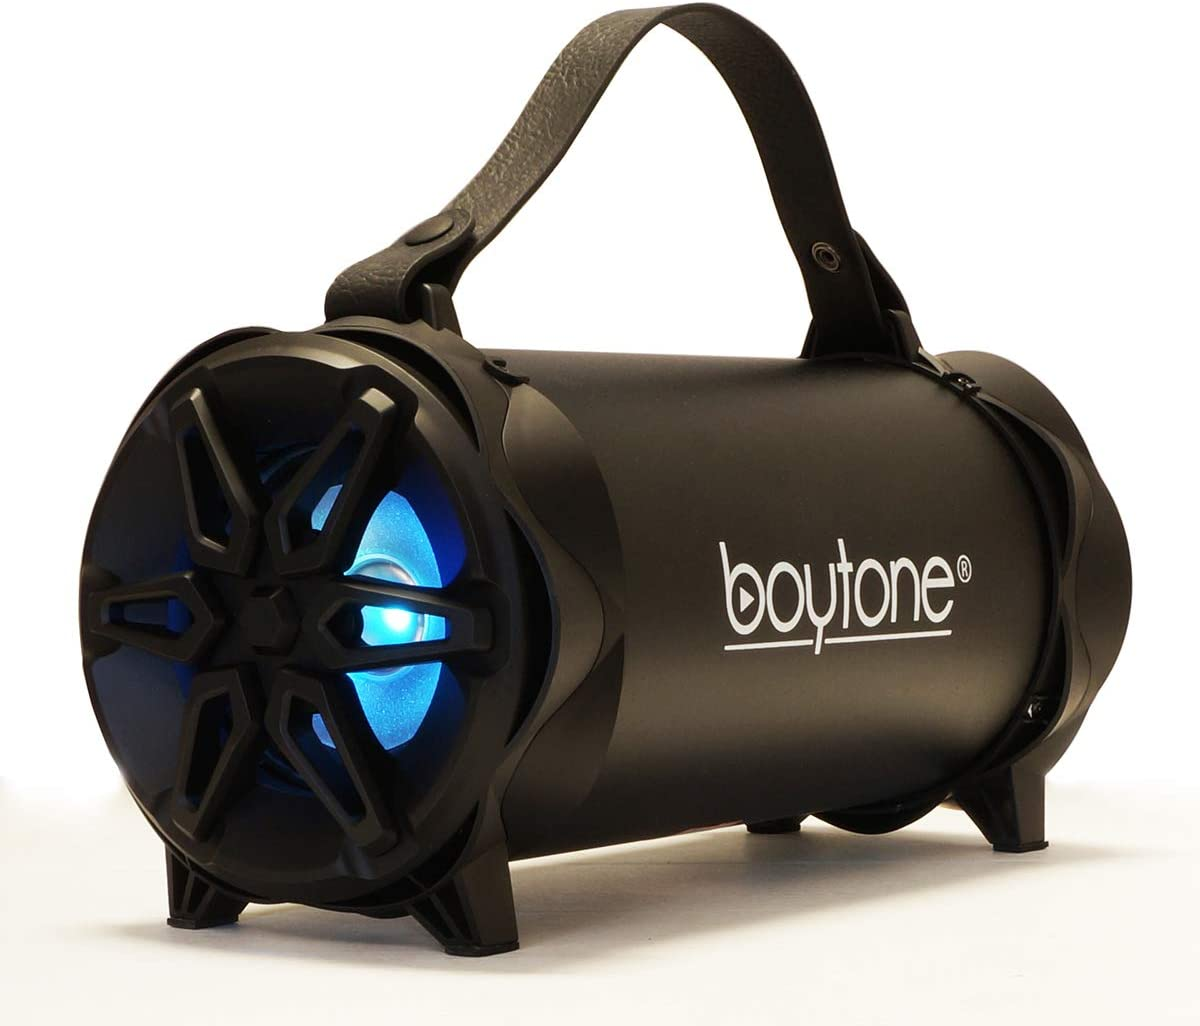 """3/"""" Subwoofer player Boytone BT-42BK Portable Bluetooth Boombox Speaker Indoor//Outdoor 2.1 Hi-Fi Cylinder Loud Sound RGB Lights Built-In 4 FM Radio AUX Inputs USB Mobil Charging Micro SD Slot"""